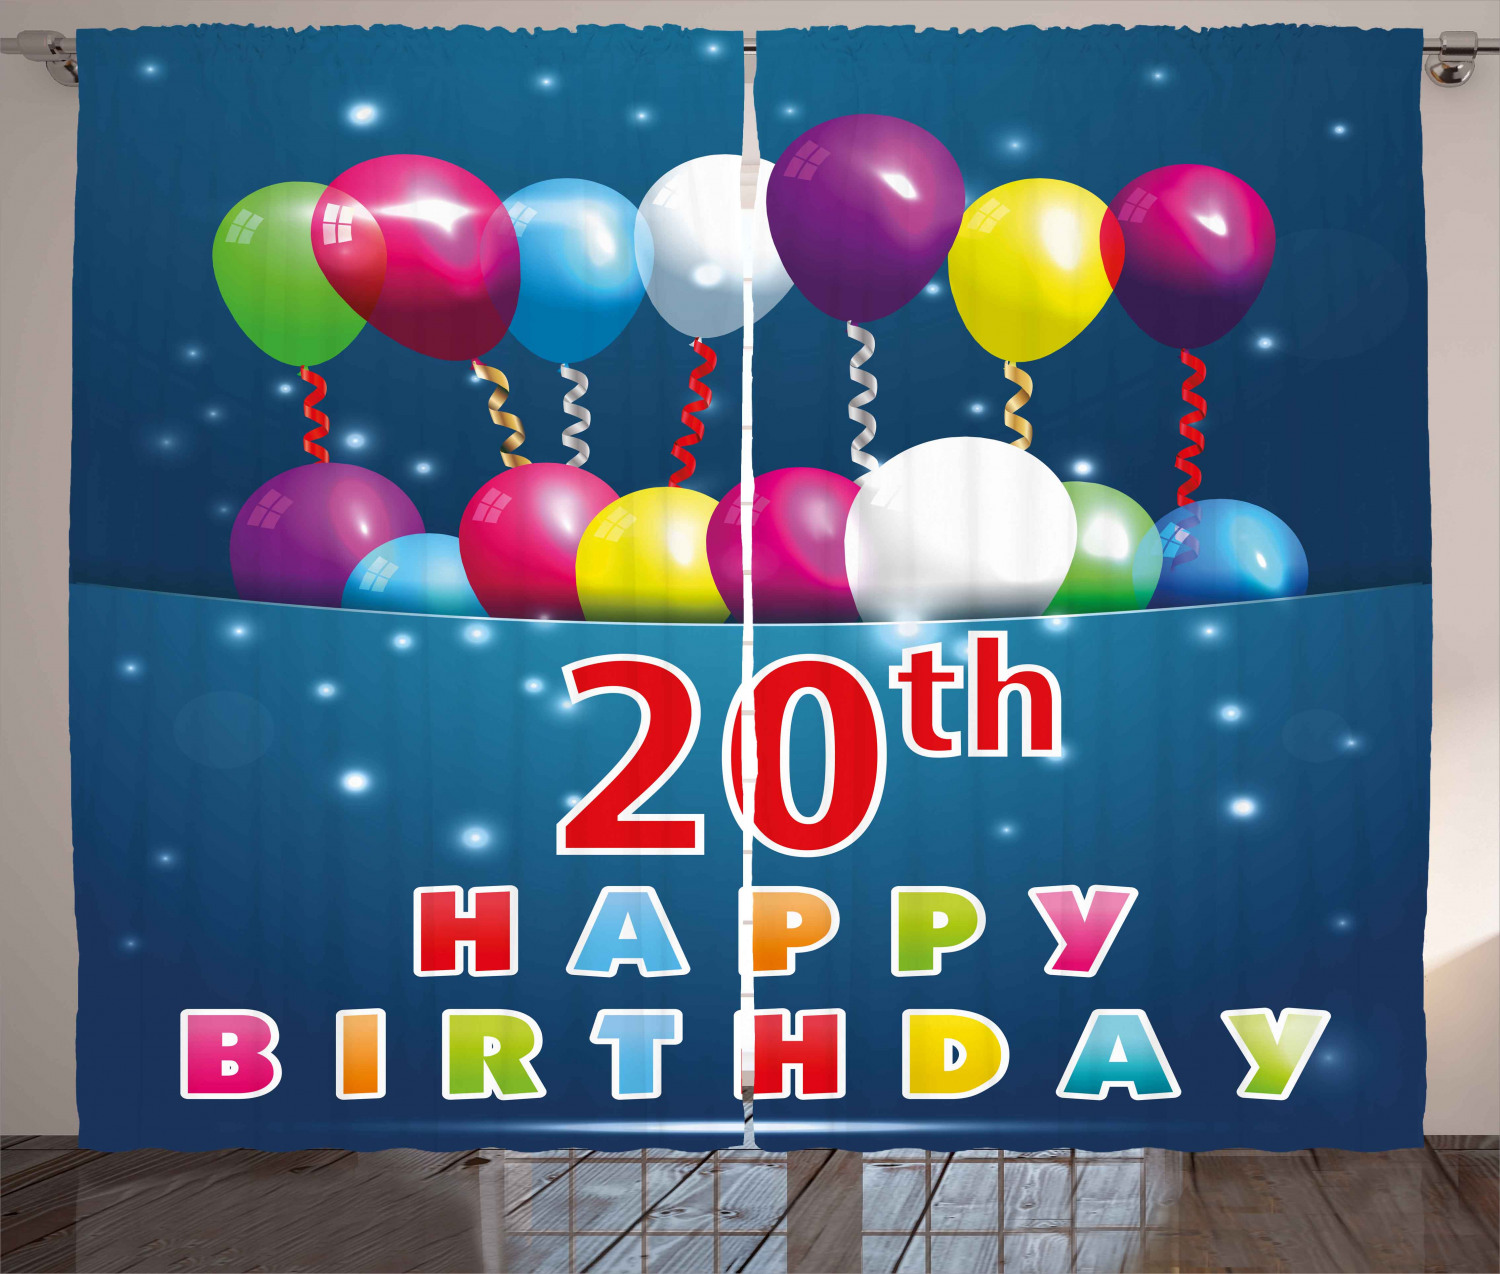 20th birthday decorations curtains 2 panels set sweet 20 birthday party with colorful balloons on blue backdrop window drapes for living room